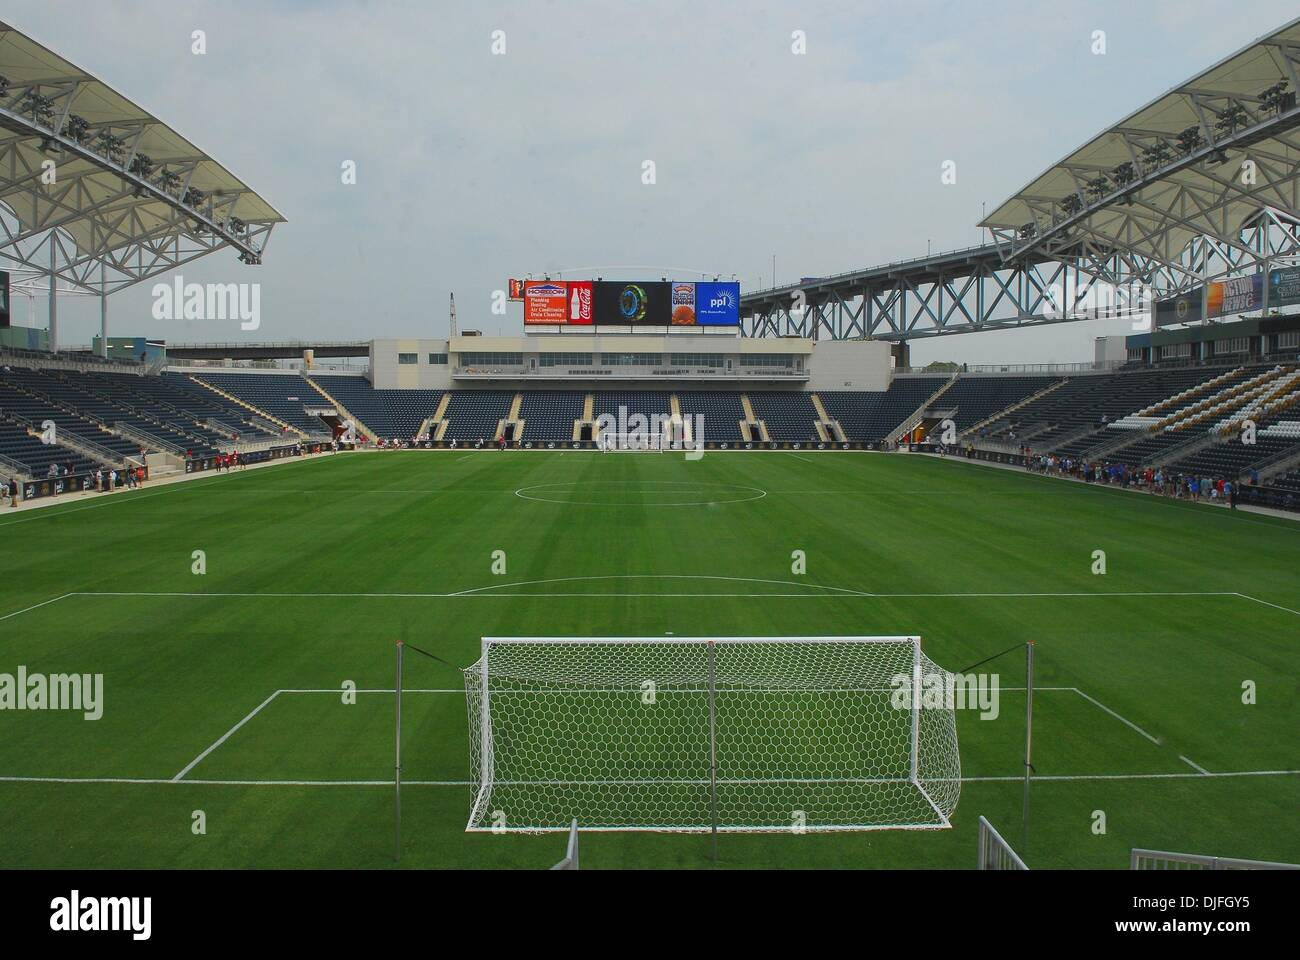 Jun 12, 2010 - Chester, Pennsylvania, U.S. - The Philadelphia Union Soccer Team opened their new stadium to season ticket holders for a pre-opening view and to watch the USA vs. England World Cup Match from South Africa. (Credit Image: © Ricky Fitchett/ZUMApress.com) - Stock Image